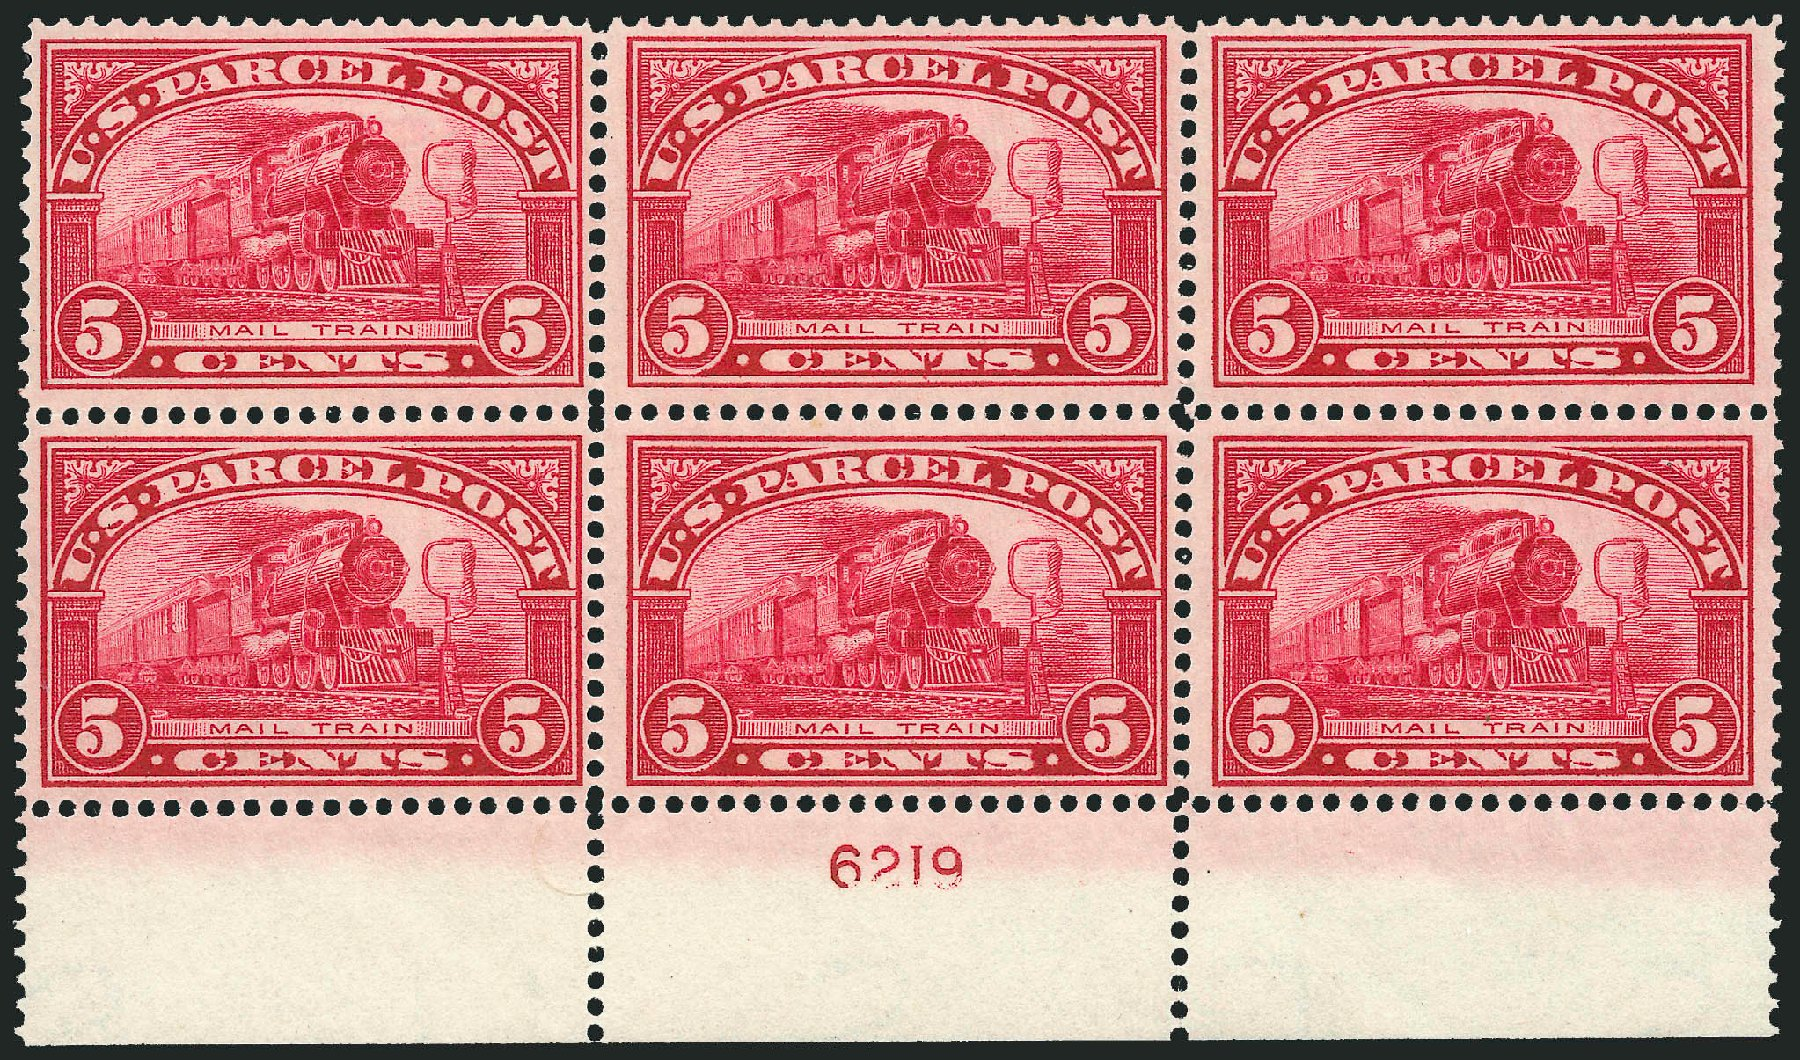 US Stamp Price Scott Catalog Q5: 1913 5c Parcel Post. Robert Siegel Auction Galleries, Apr 2014, Sale 1068, Lot 432